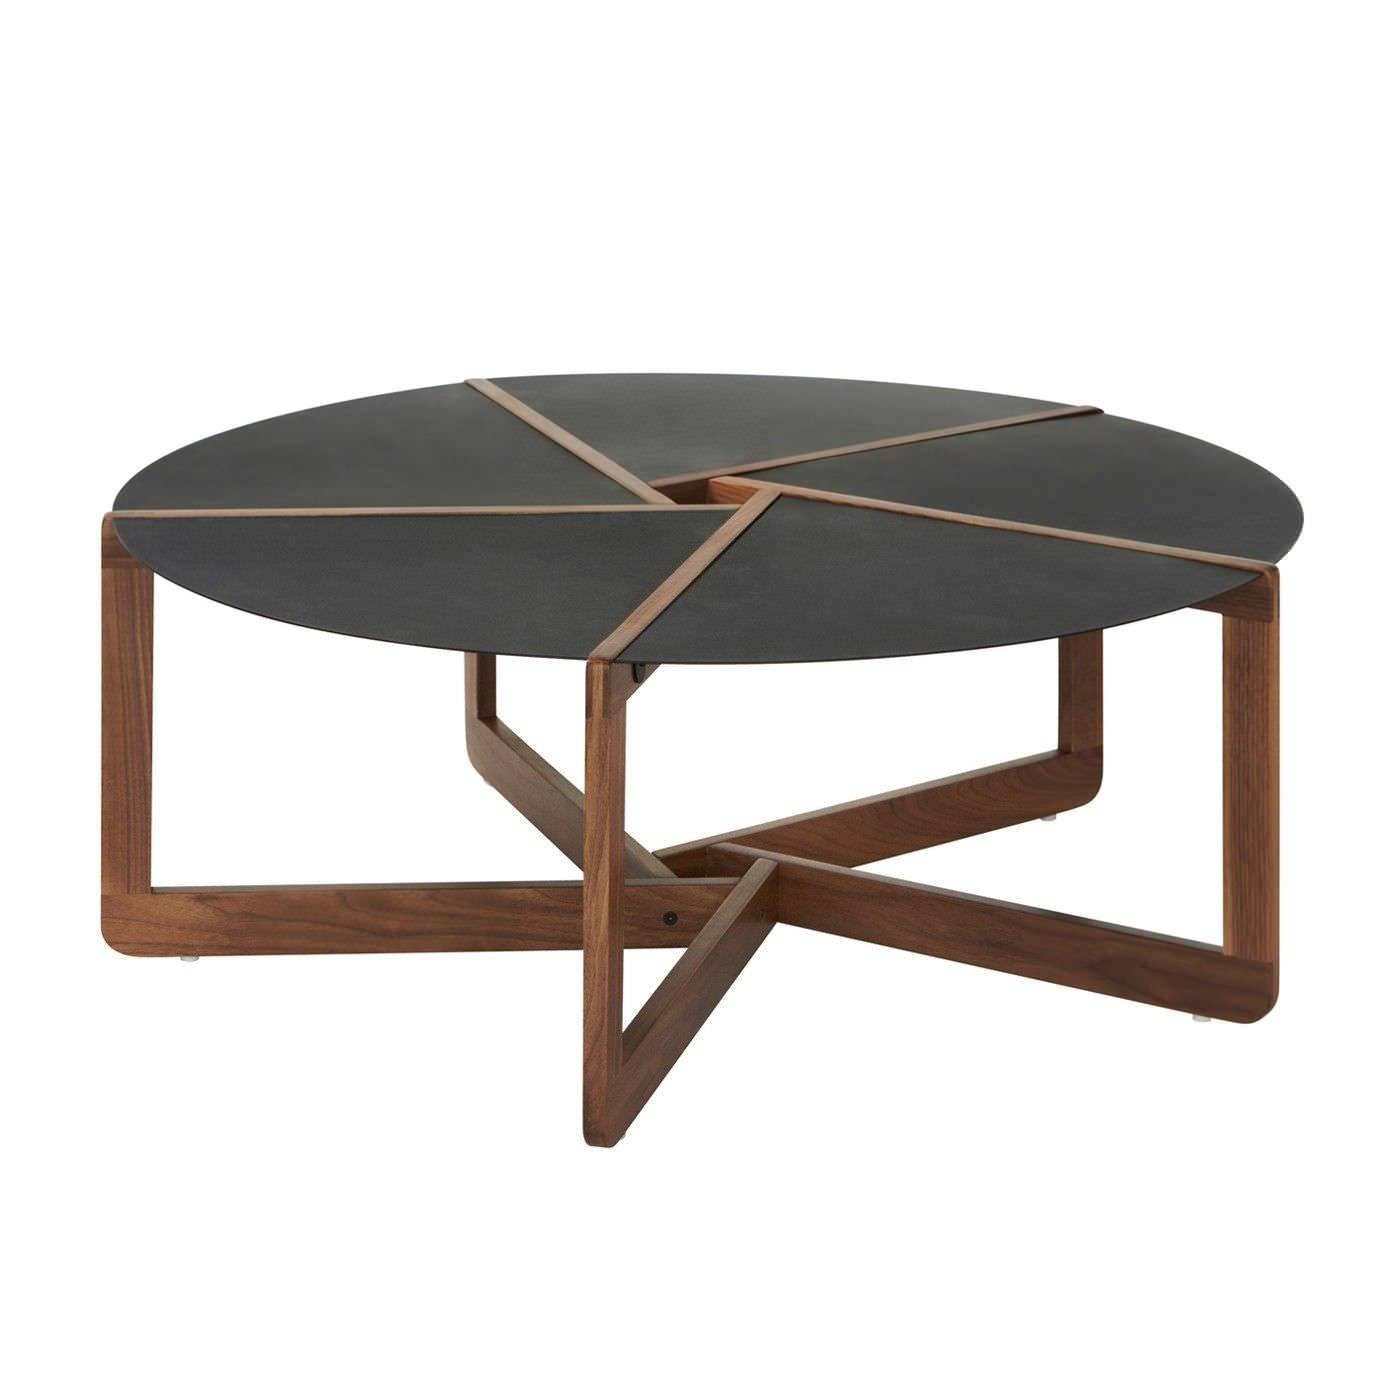 Contemporary Coffee Table / Walnut / Solid Wood / Ash - Pi - Blu Dot within Coffee Tables Solid Wood (Image 11 of 30)